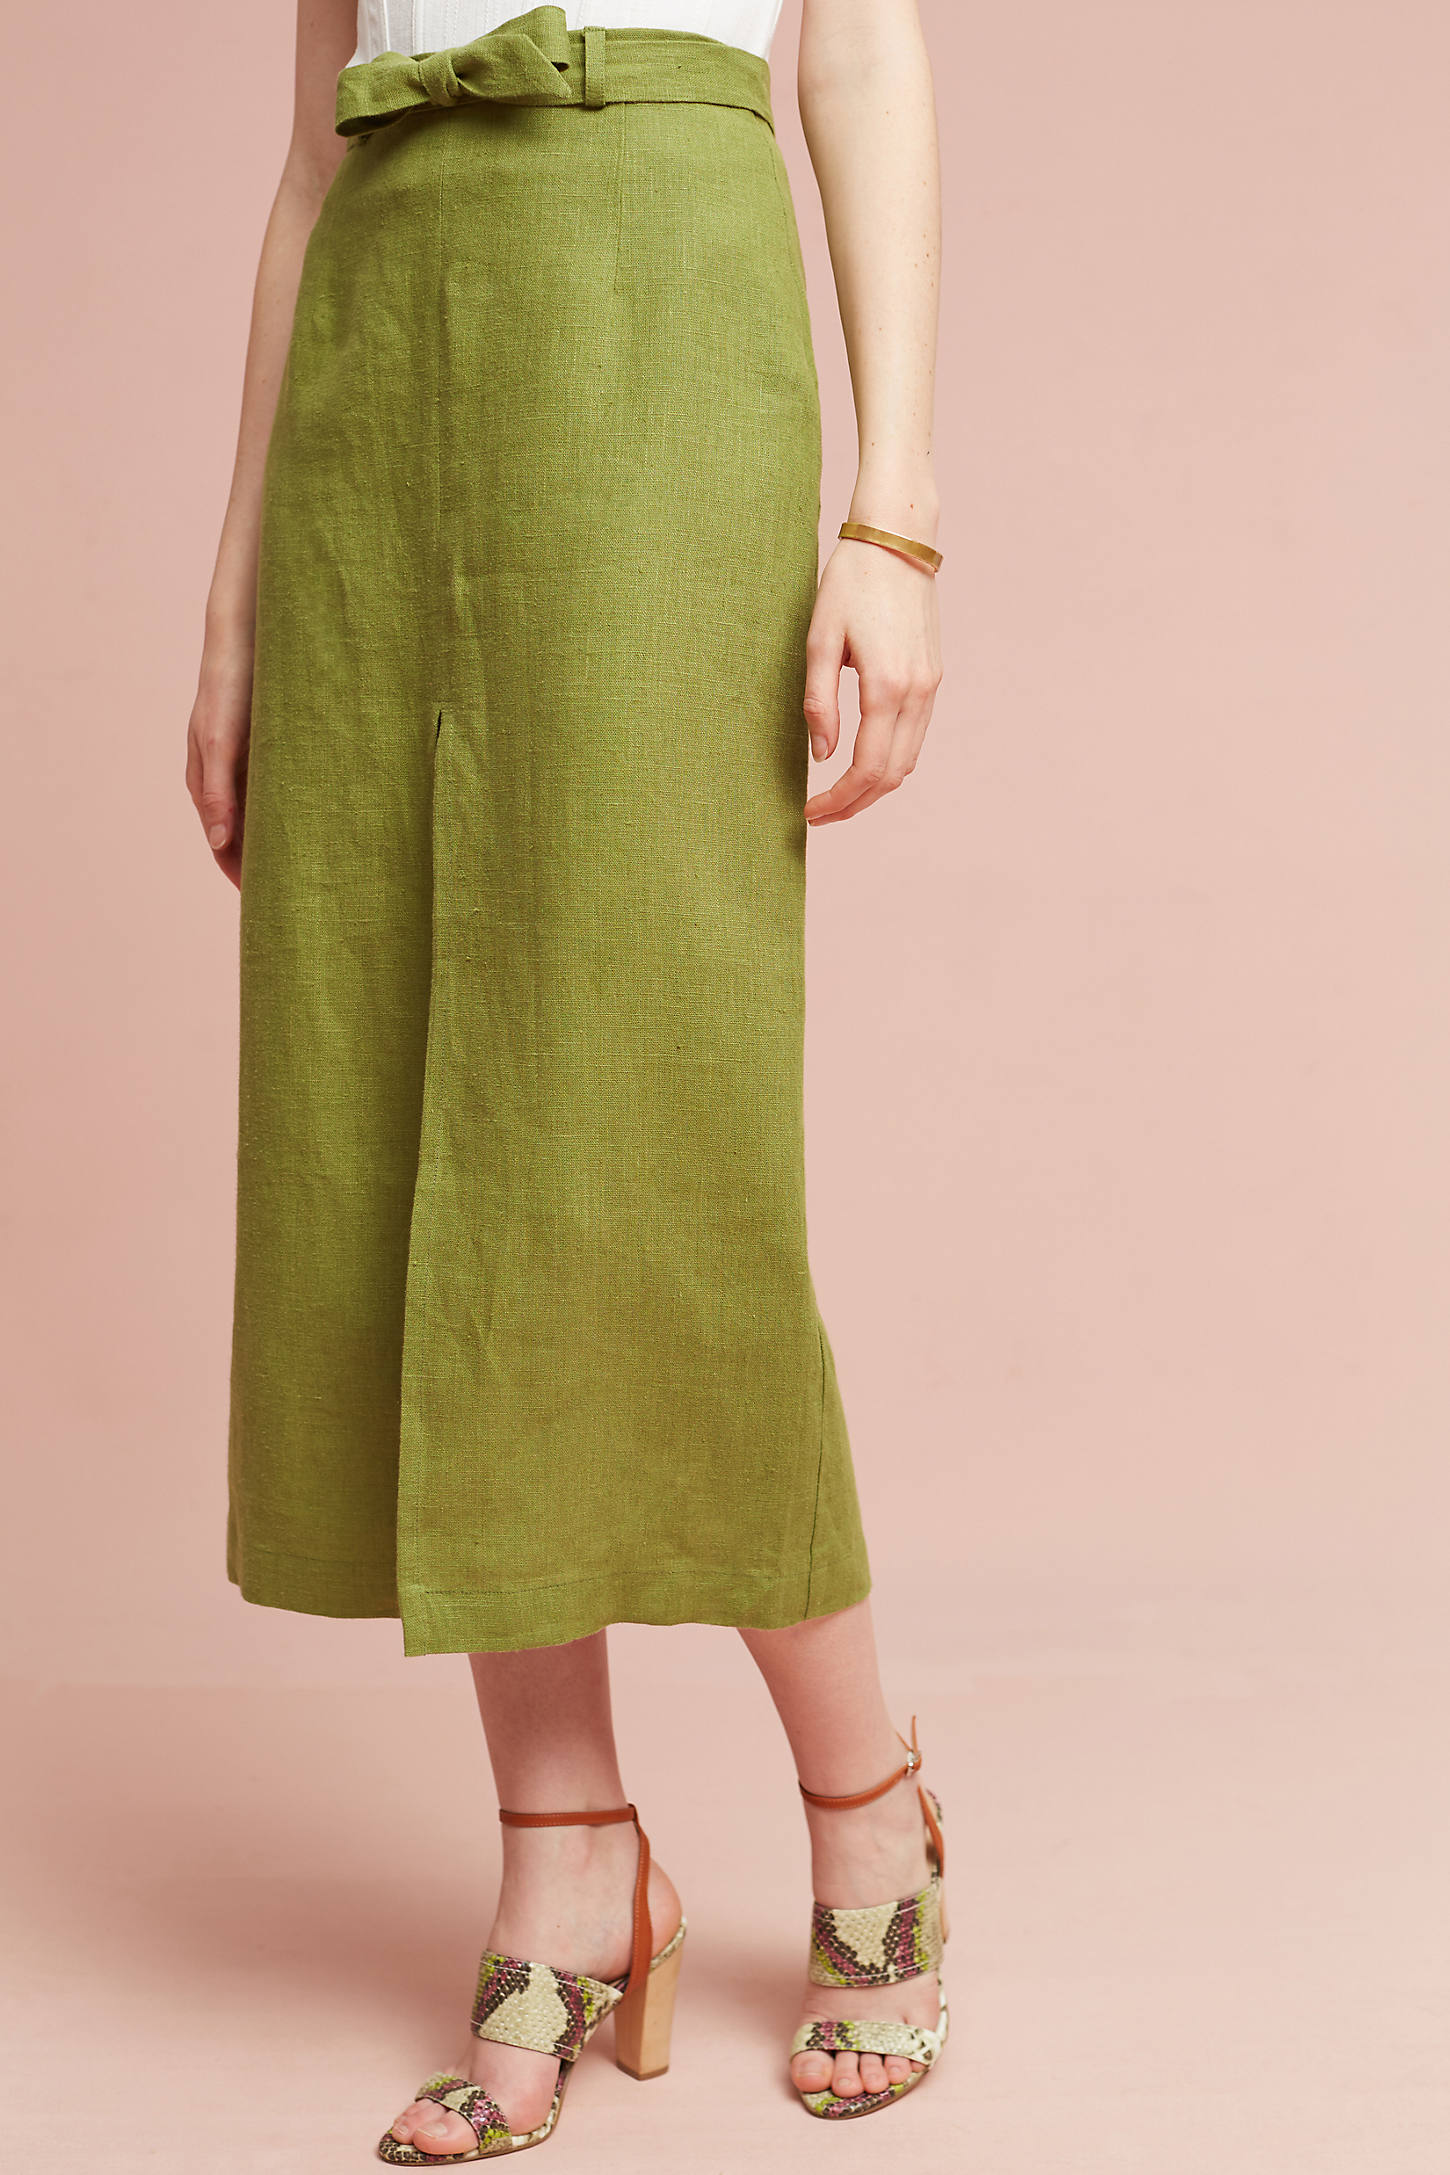 Sliced Linen Skirt